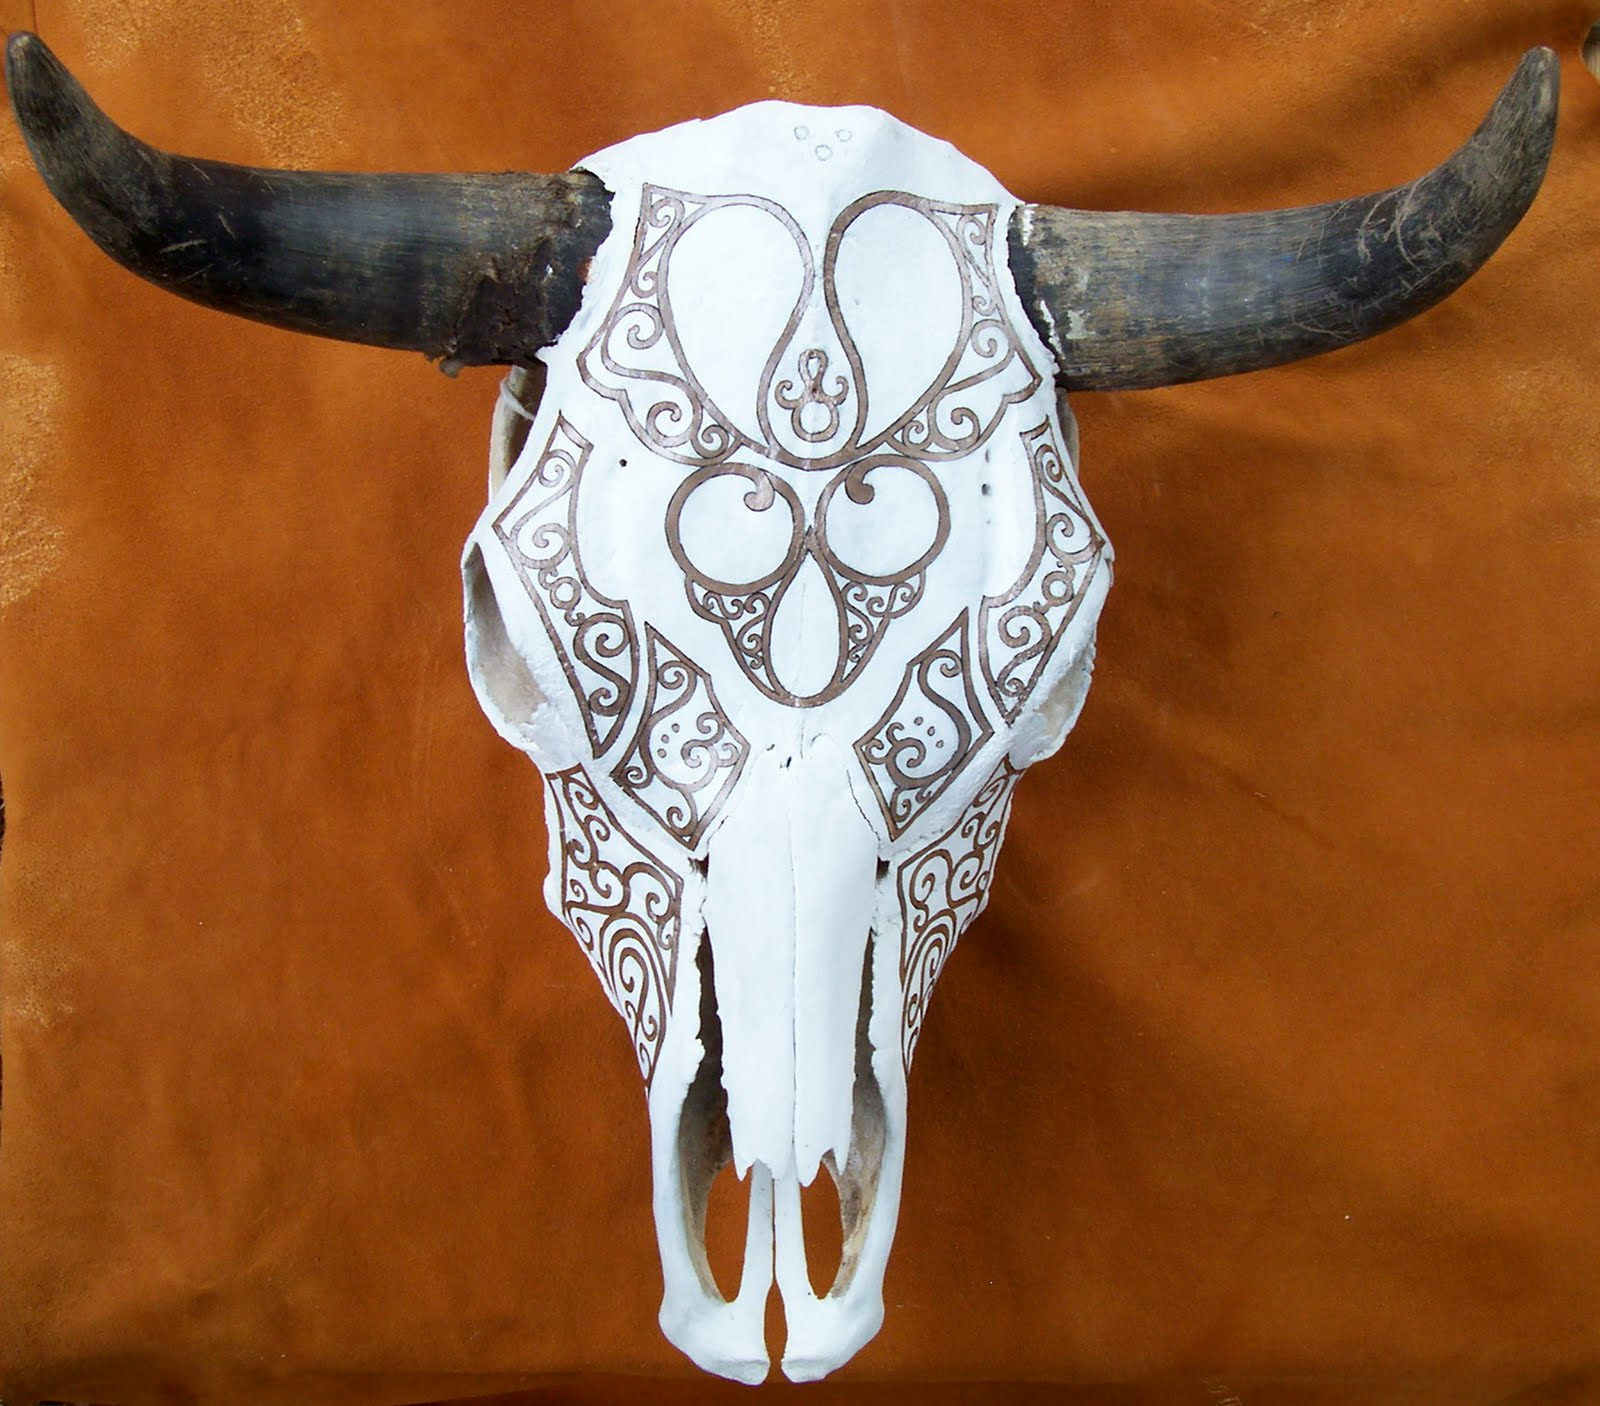 Pictures of Painted Cow Skulls http://wizartbyoonagh.blogspot.com/2010/09/painted-cow-skull.html